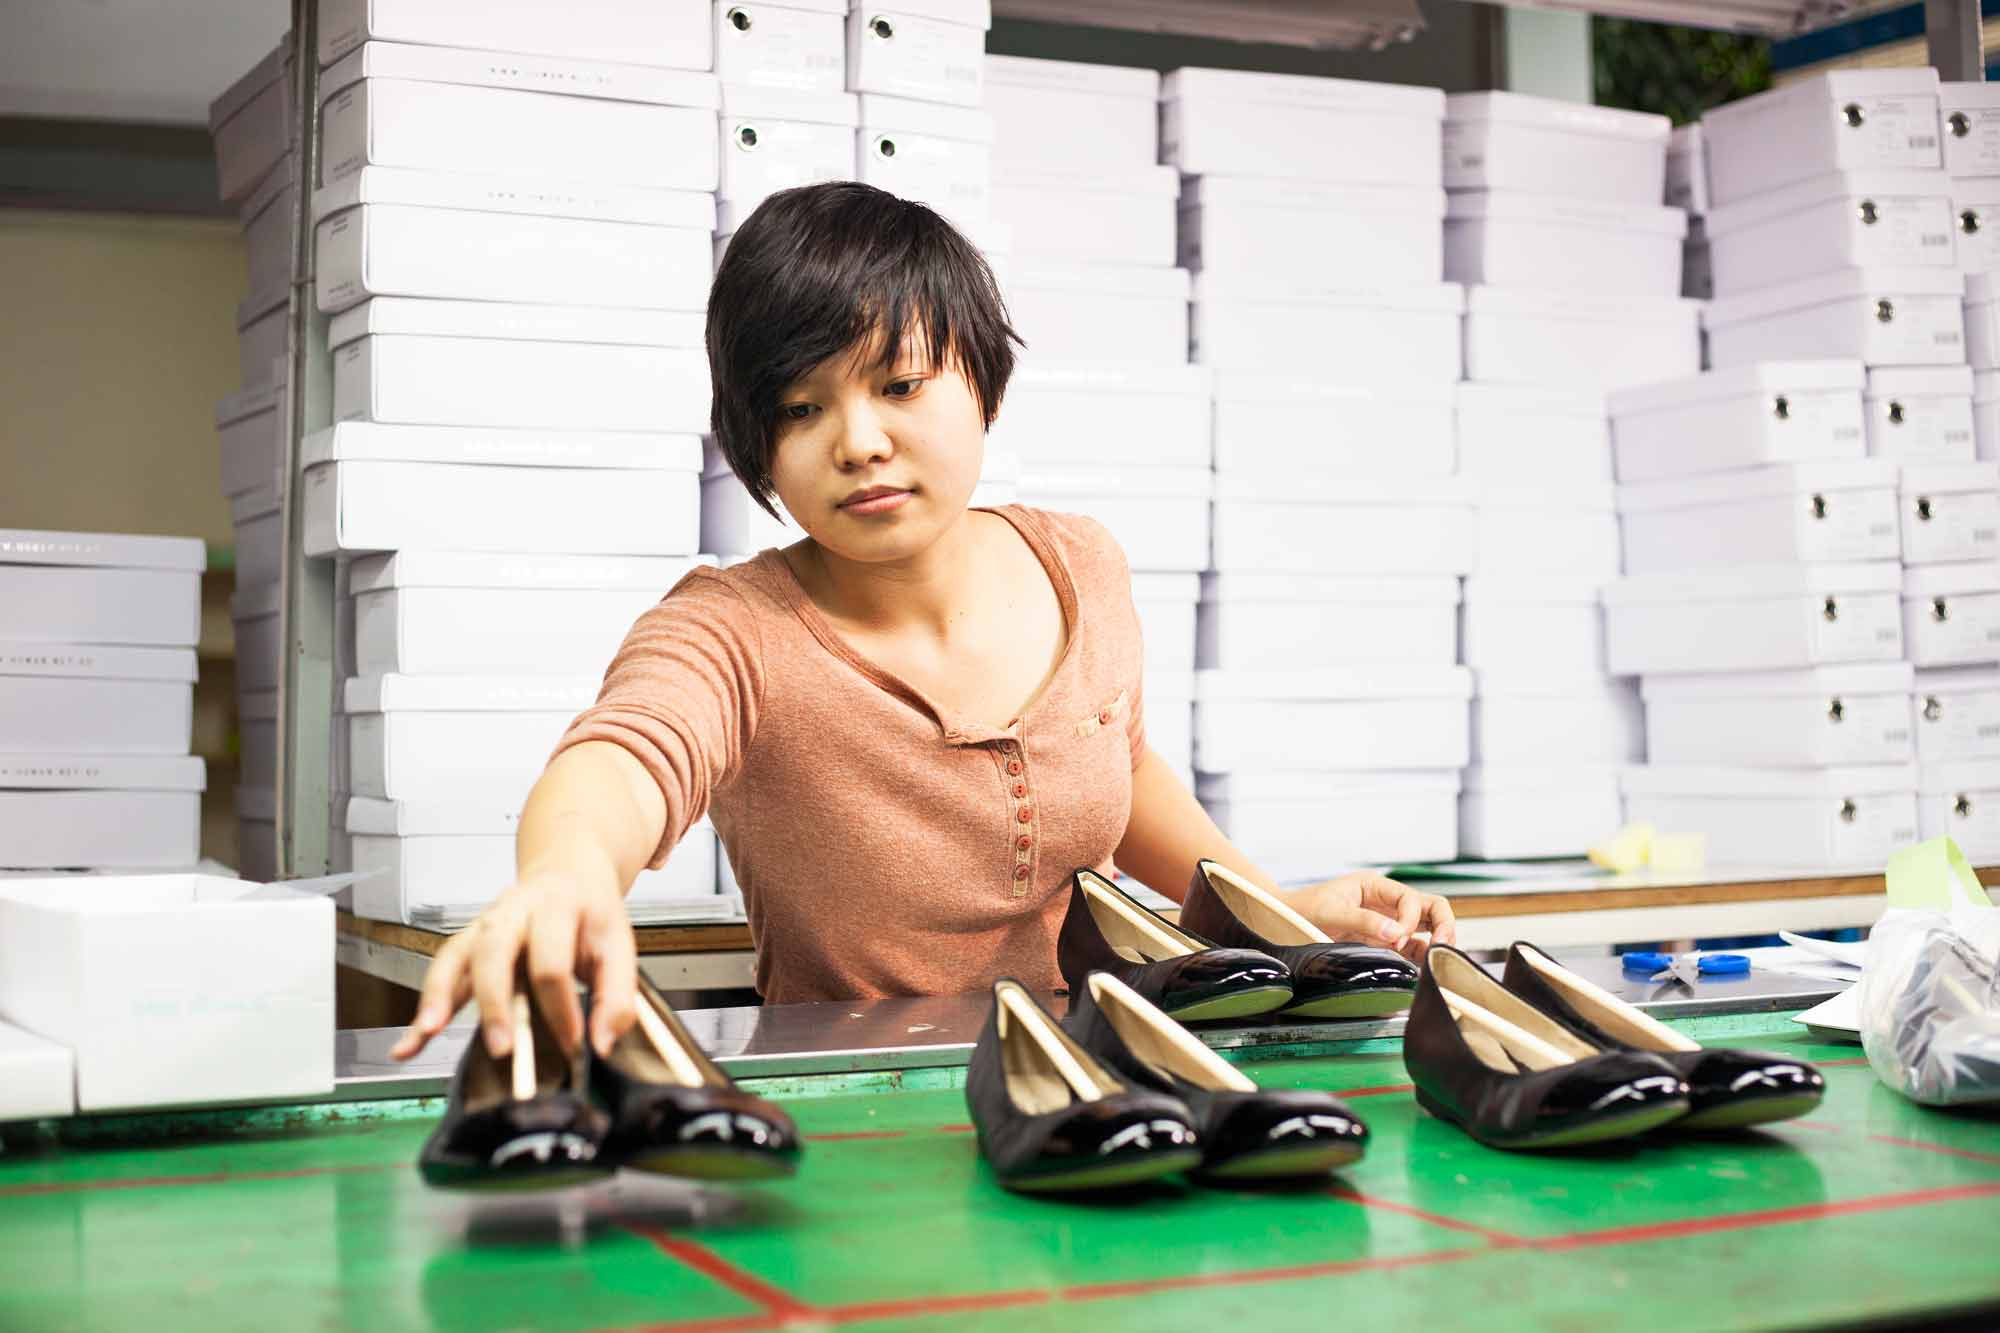 Shoe Factory|Shoe Factories in Vietnam at Our Network